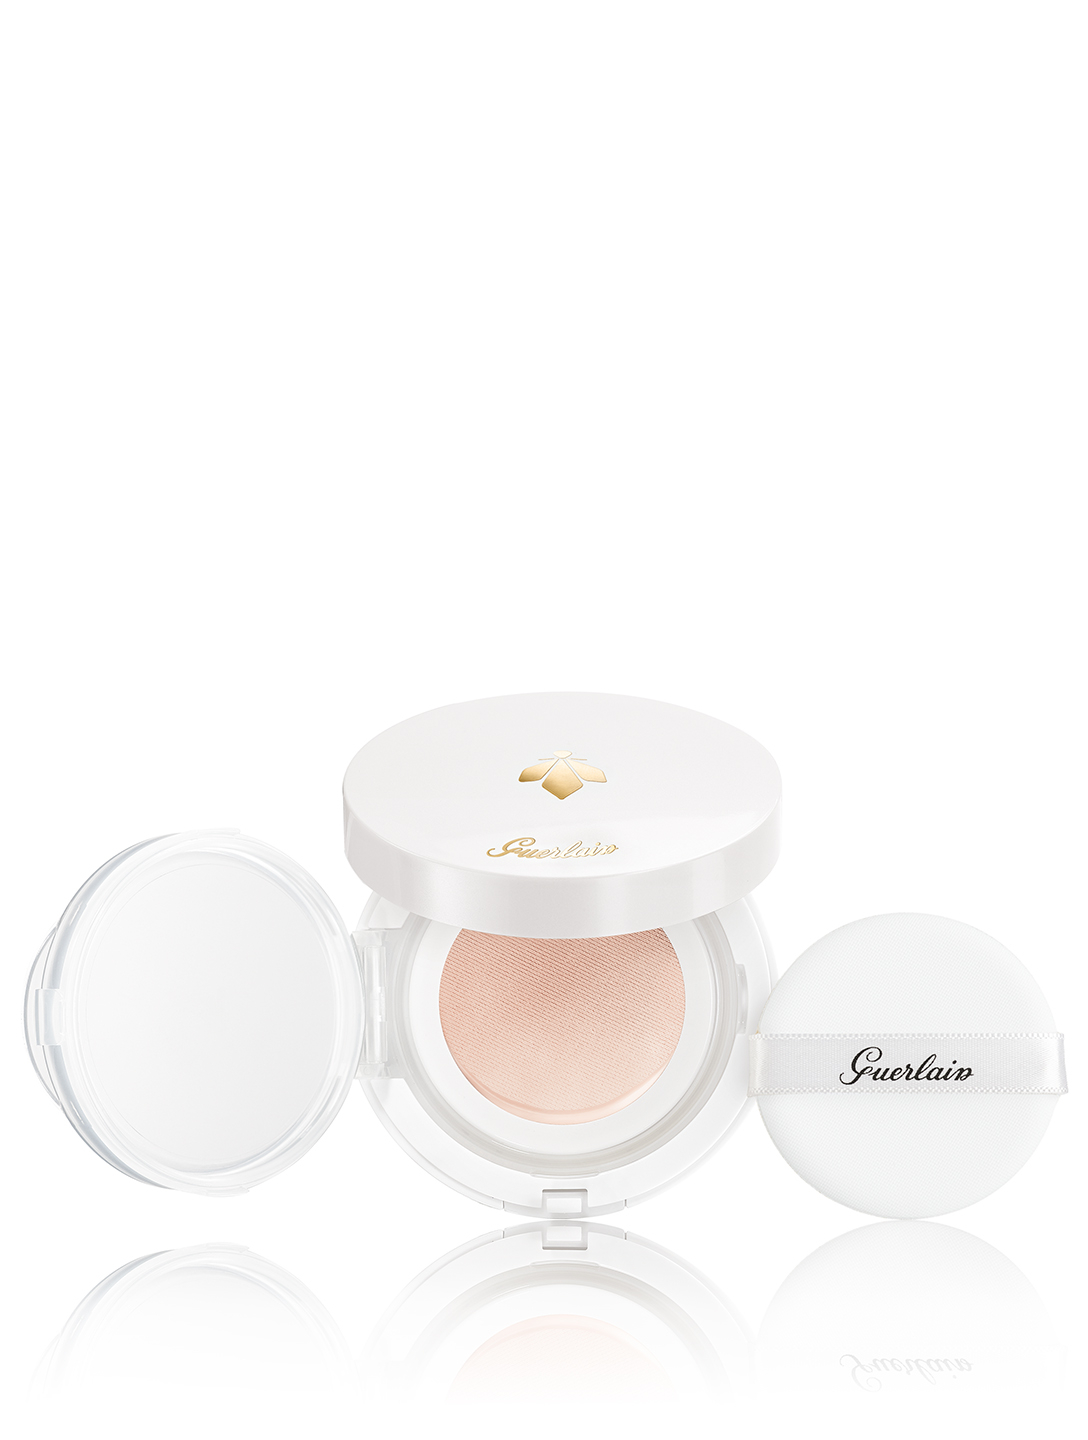 GUERLAIN Abeille Royale Cushion Beauty Neutral